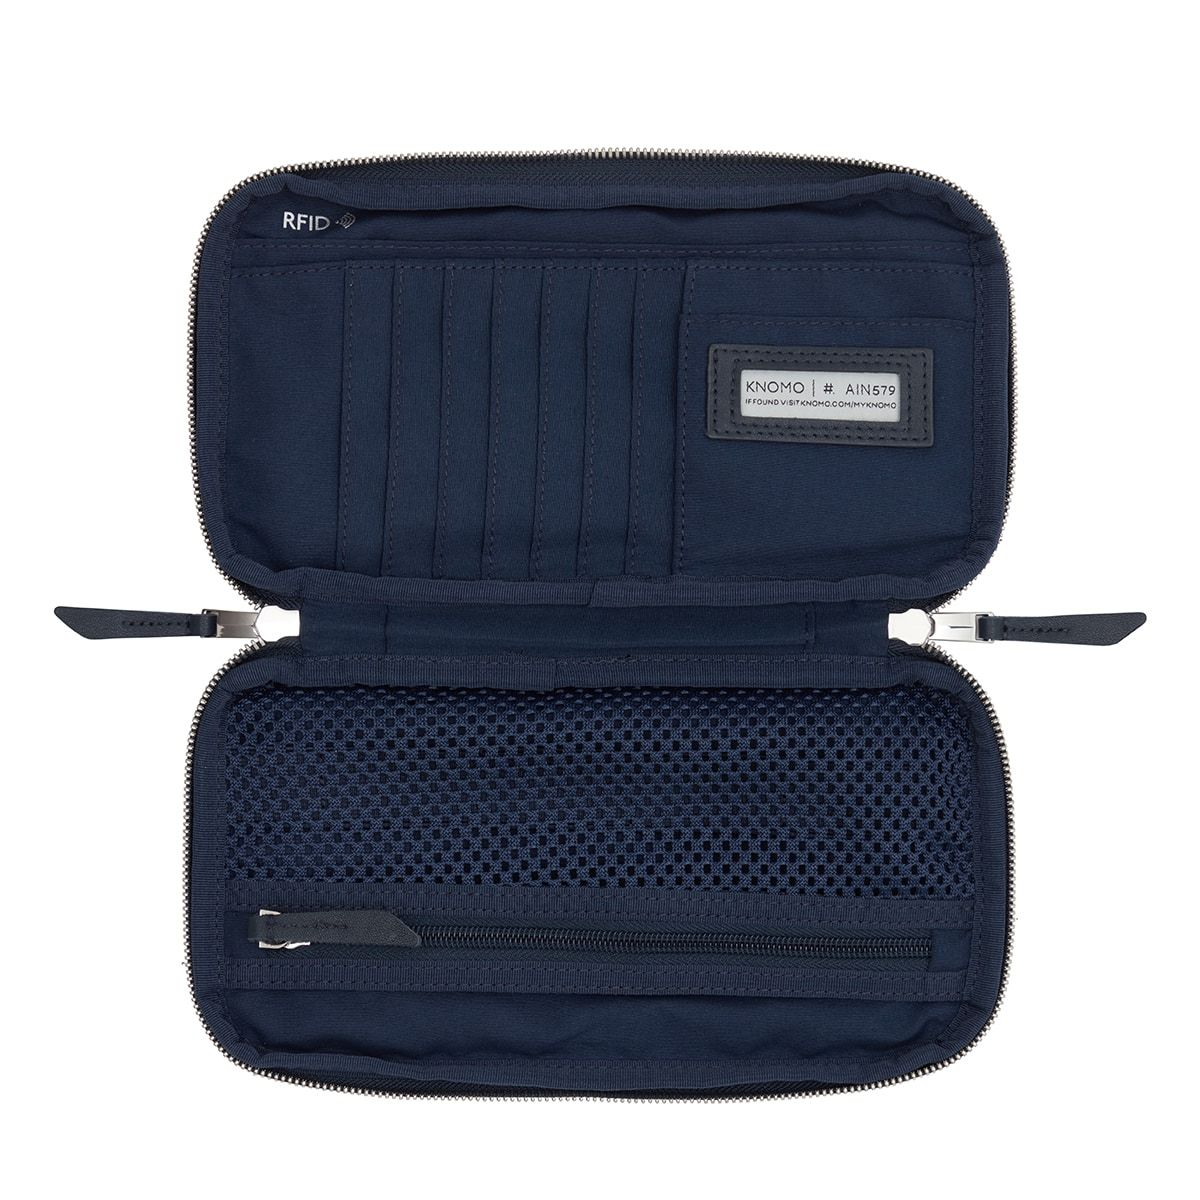 "KNOMO Knomad Travel Wallet Travel Organiser Internal View Empty 8"" -  Dark Navy Blazer 